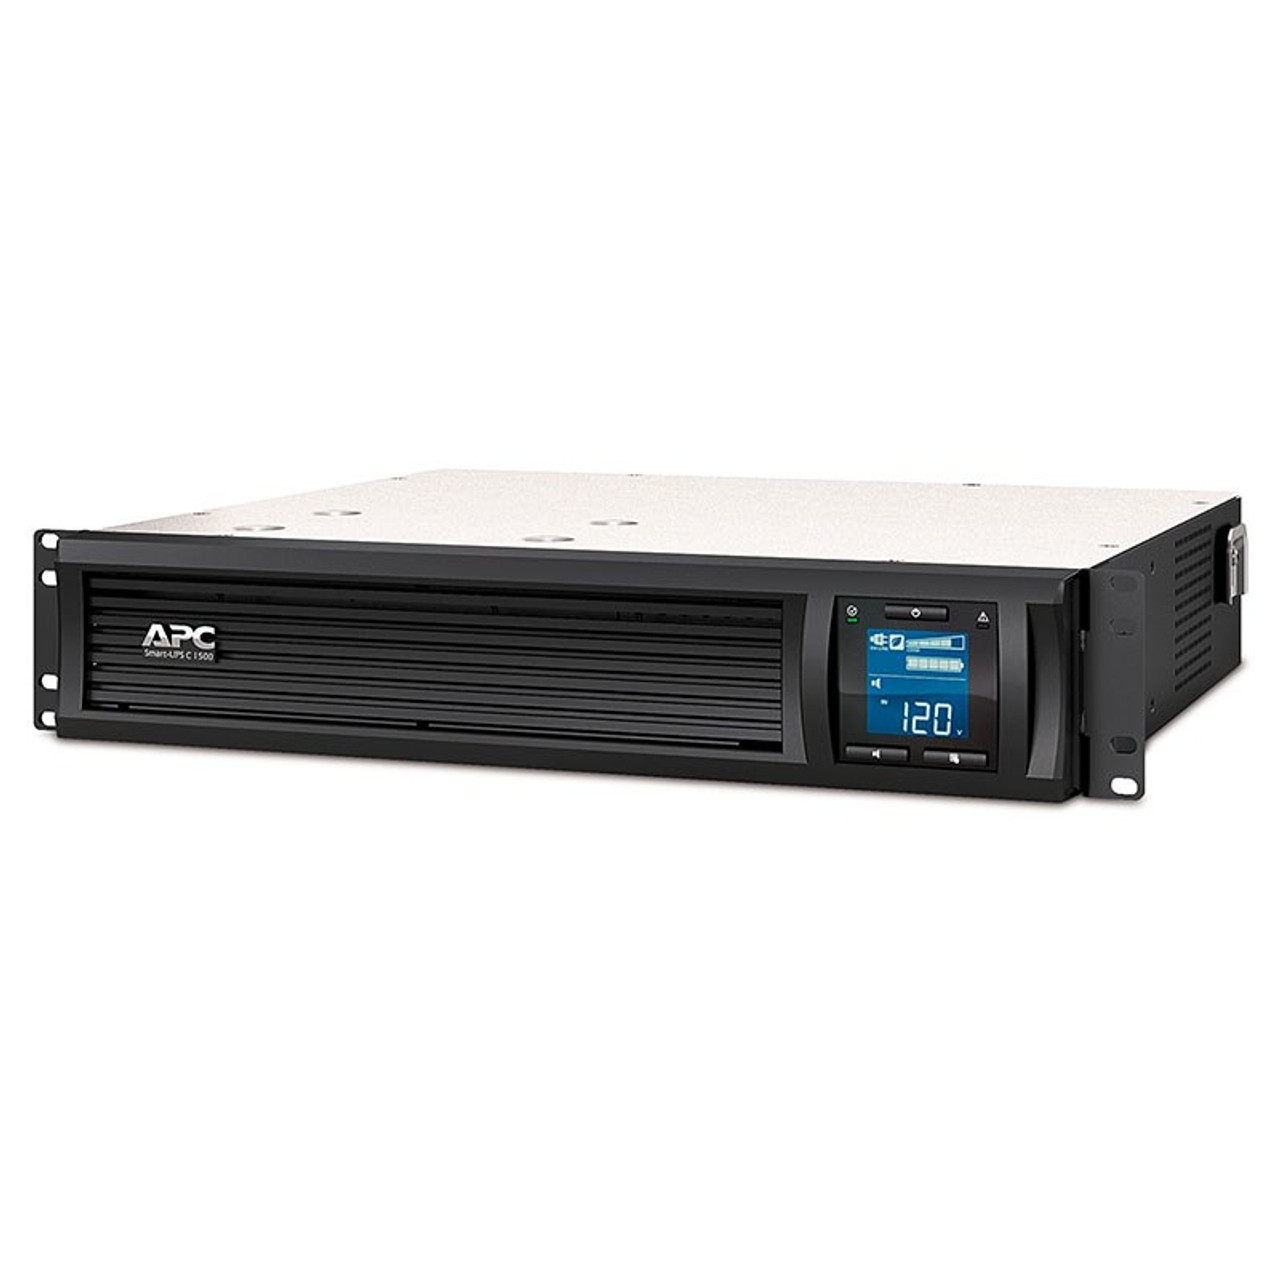 Image for APC SMC1500I-2UC 1500VA 230V LCD RM Line Interactive Sinewave 2U Smart UPS CX Computer Superstore